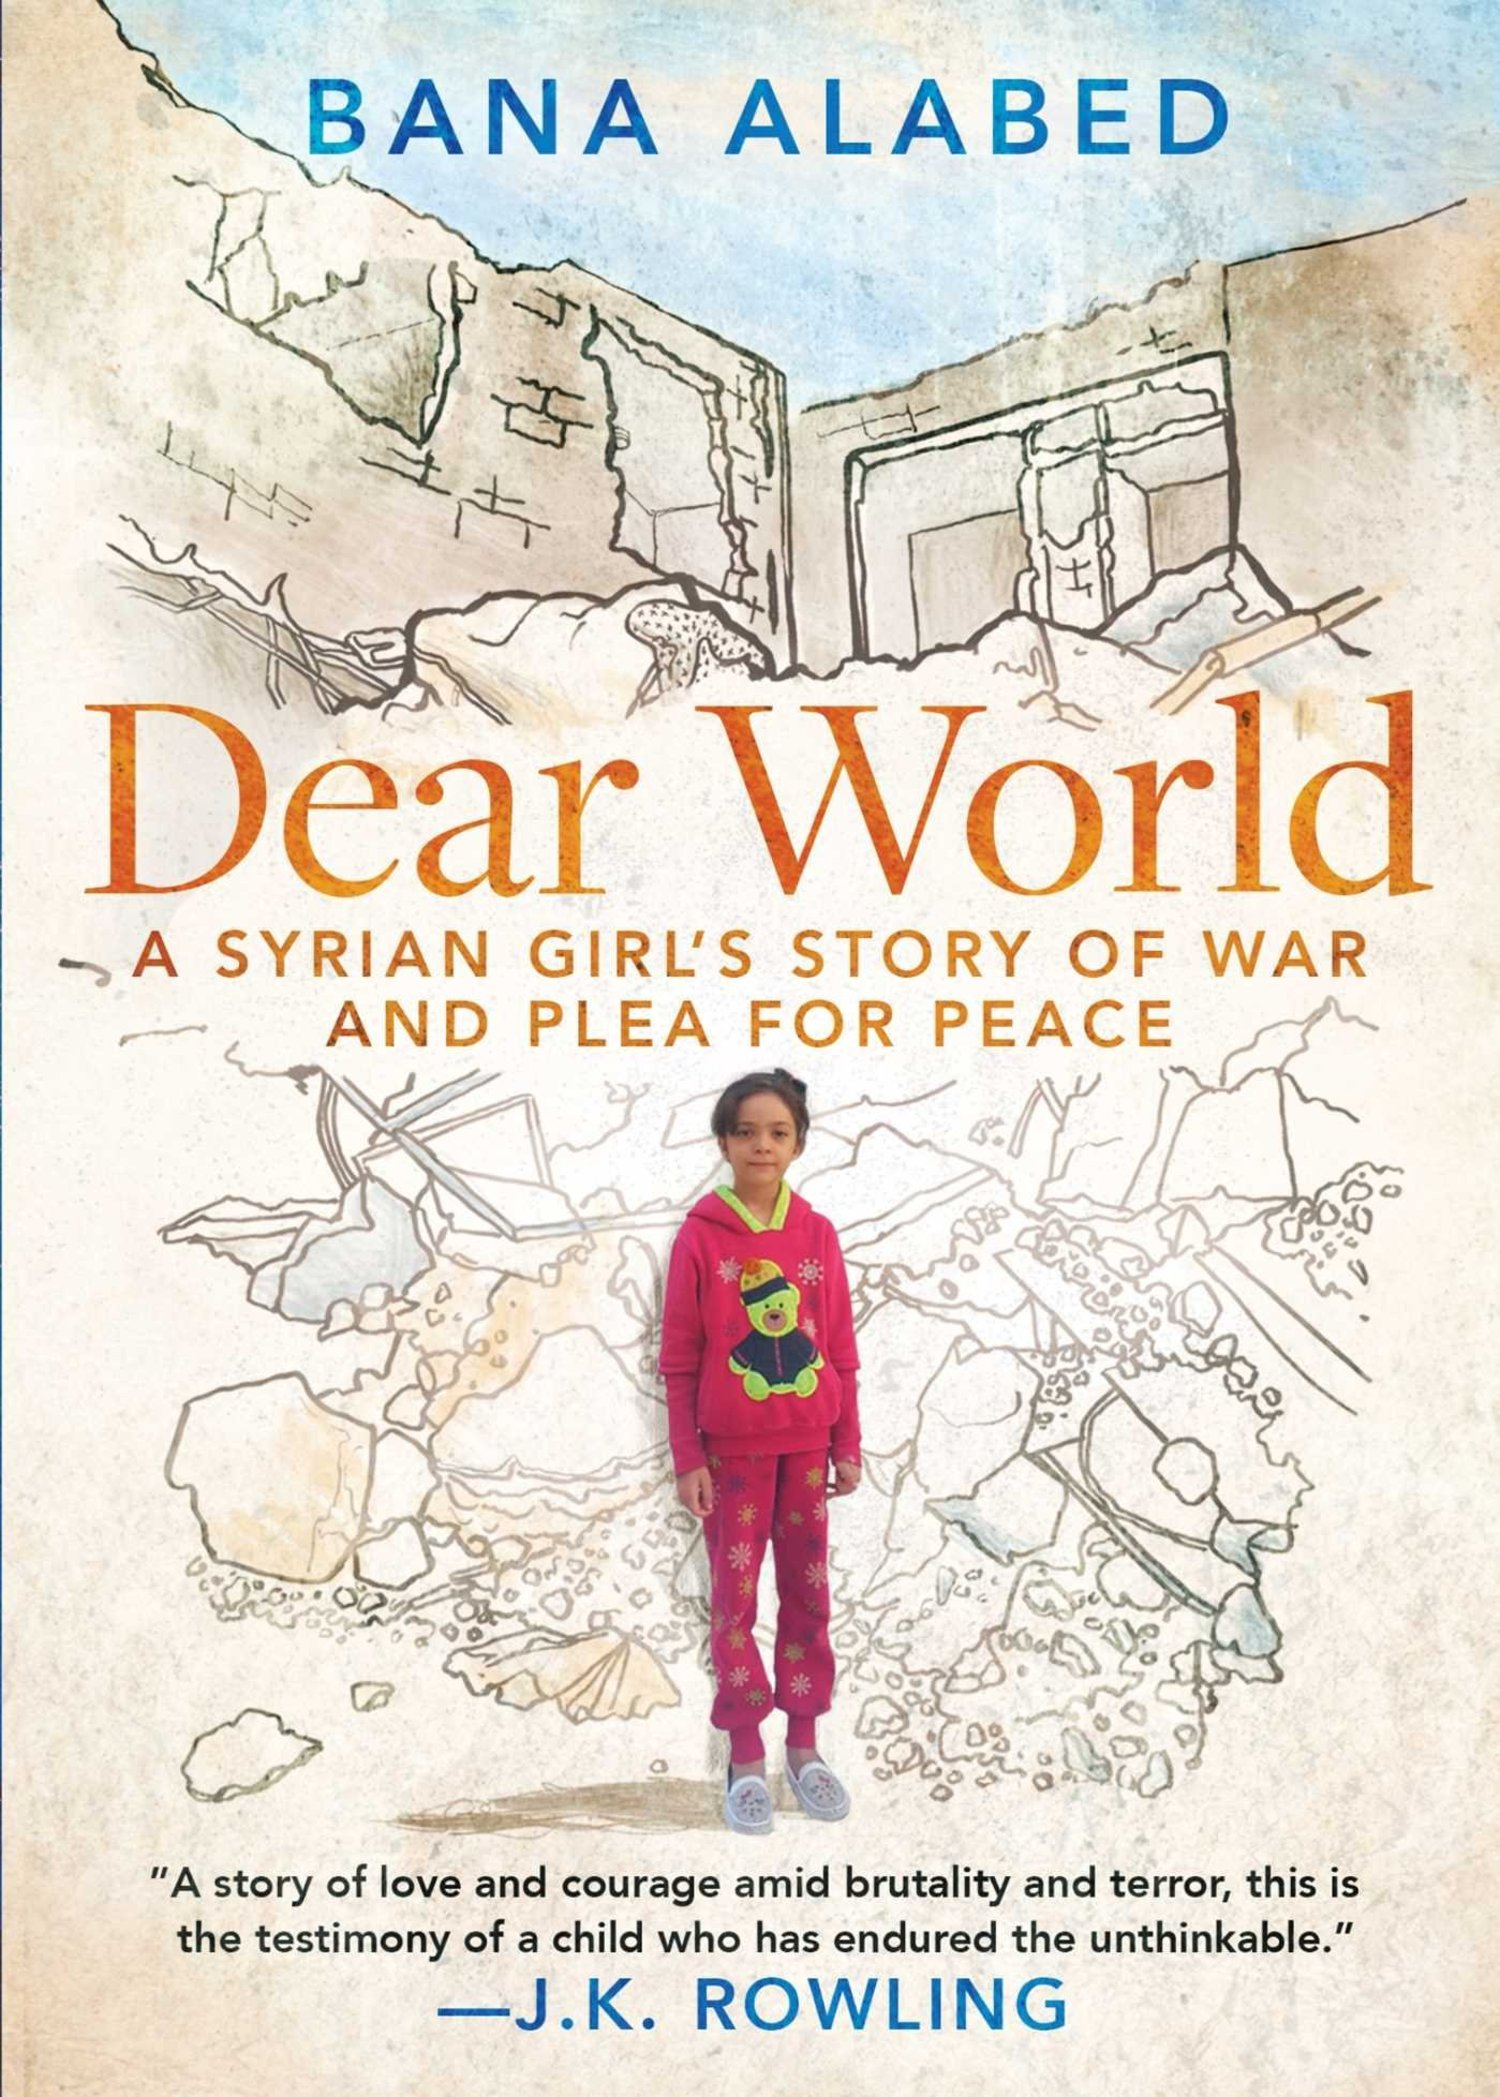 Dear World: A Syrian Girl's Story of War and Plea for Peace, Bana Alabed, 2017